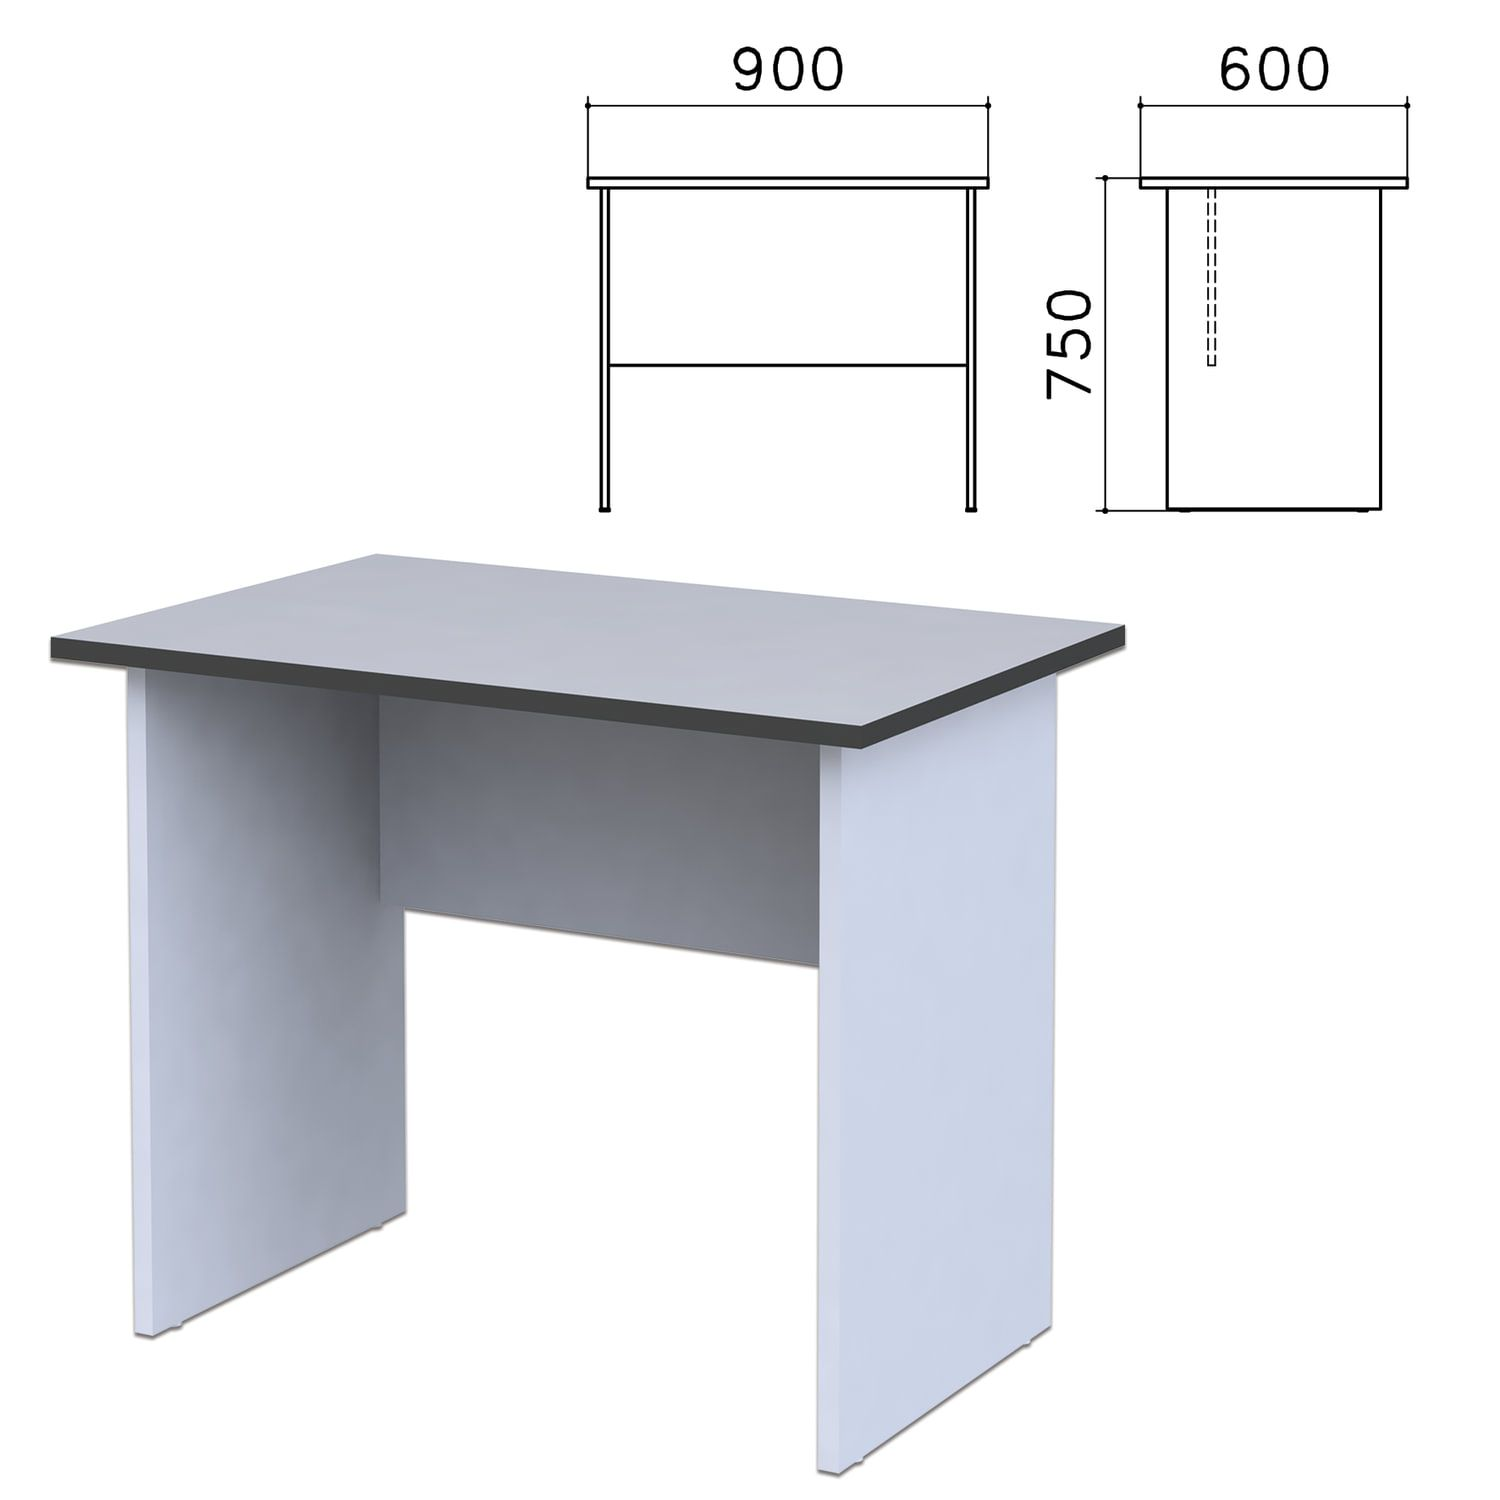 "Table written ""Monolith,"" 900 x600 x750 mm, color gray"